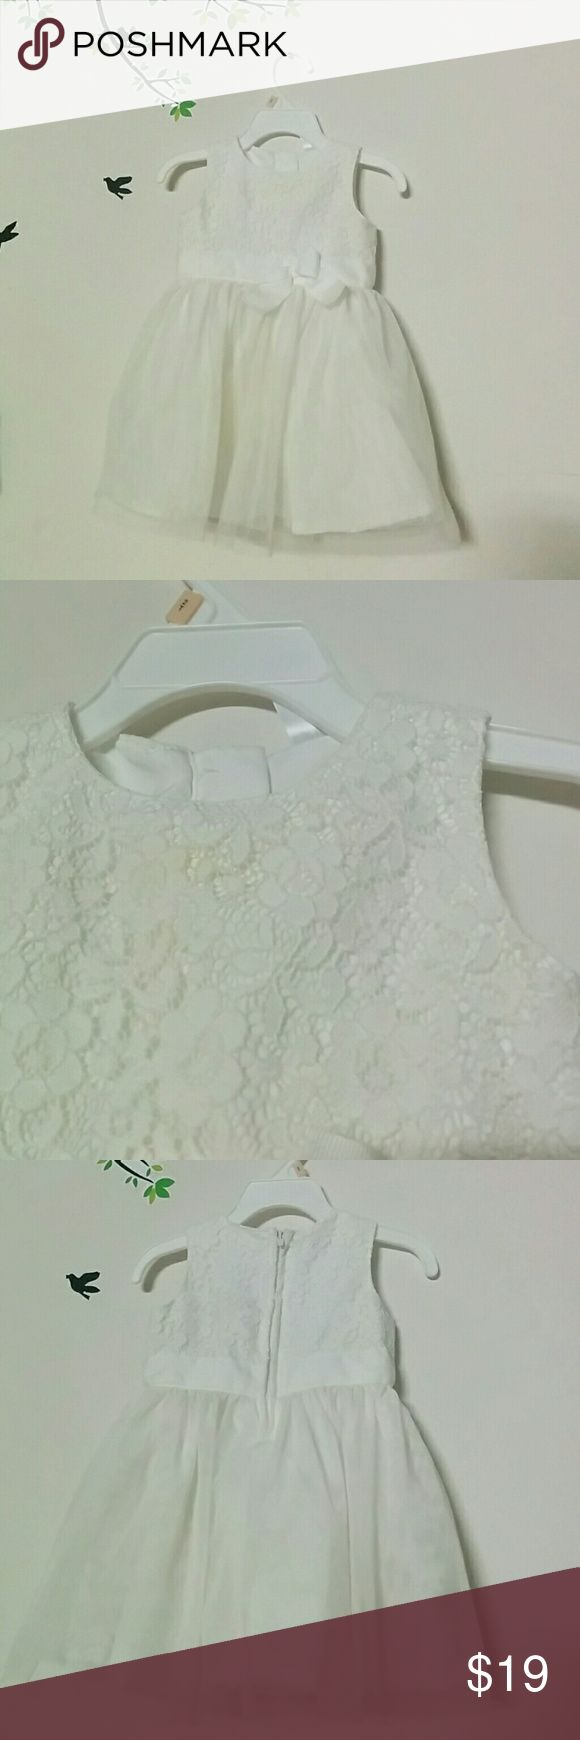 Carter's baby girl dresses 9 months. Pretty froks for 9 months old princess. Worn gently on special occasions. Carter's Dresses